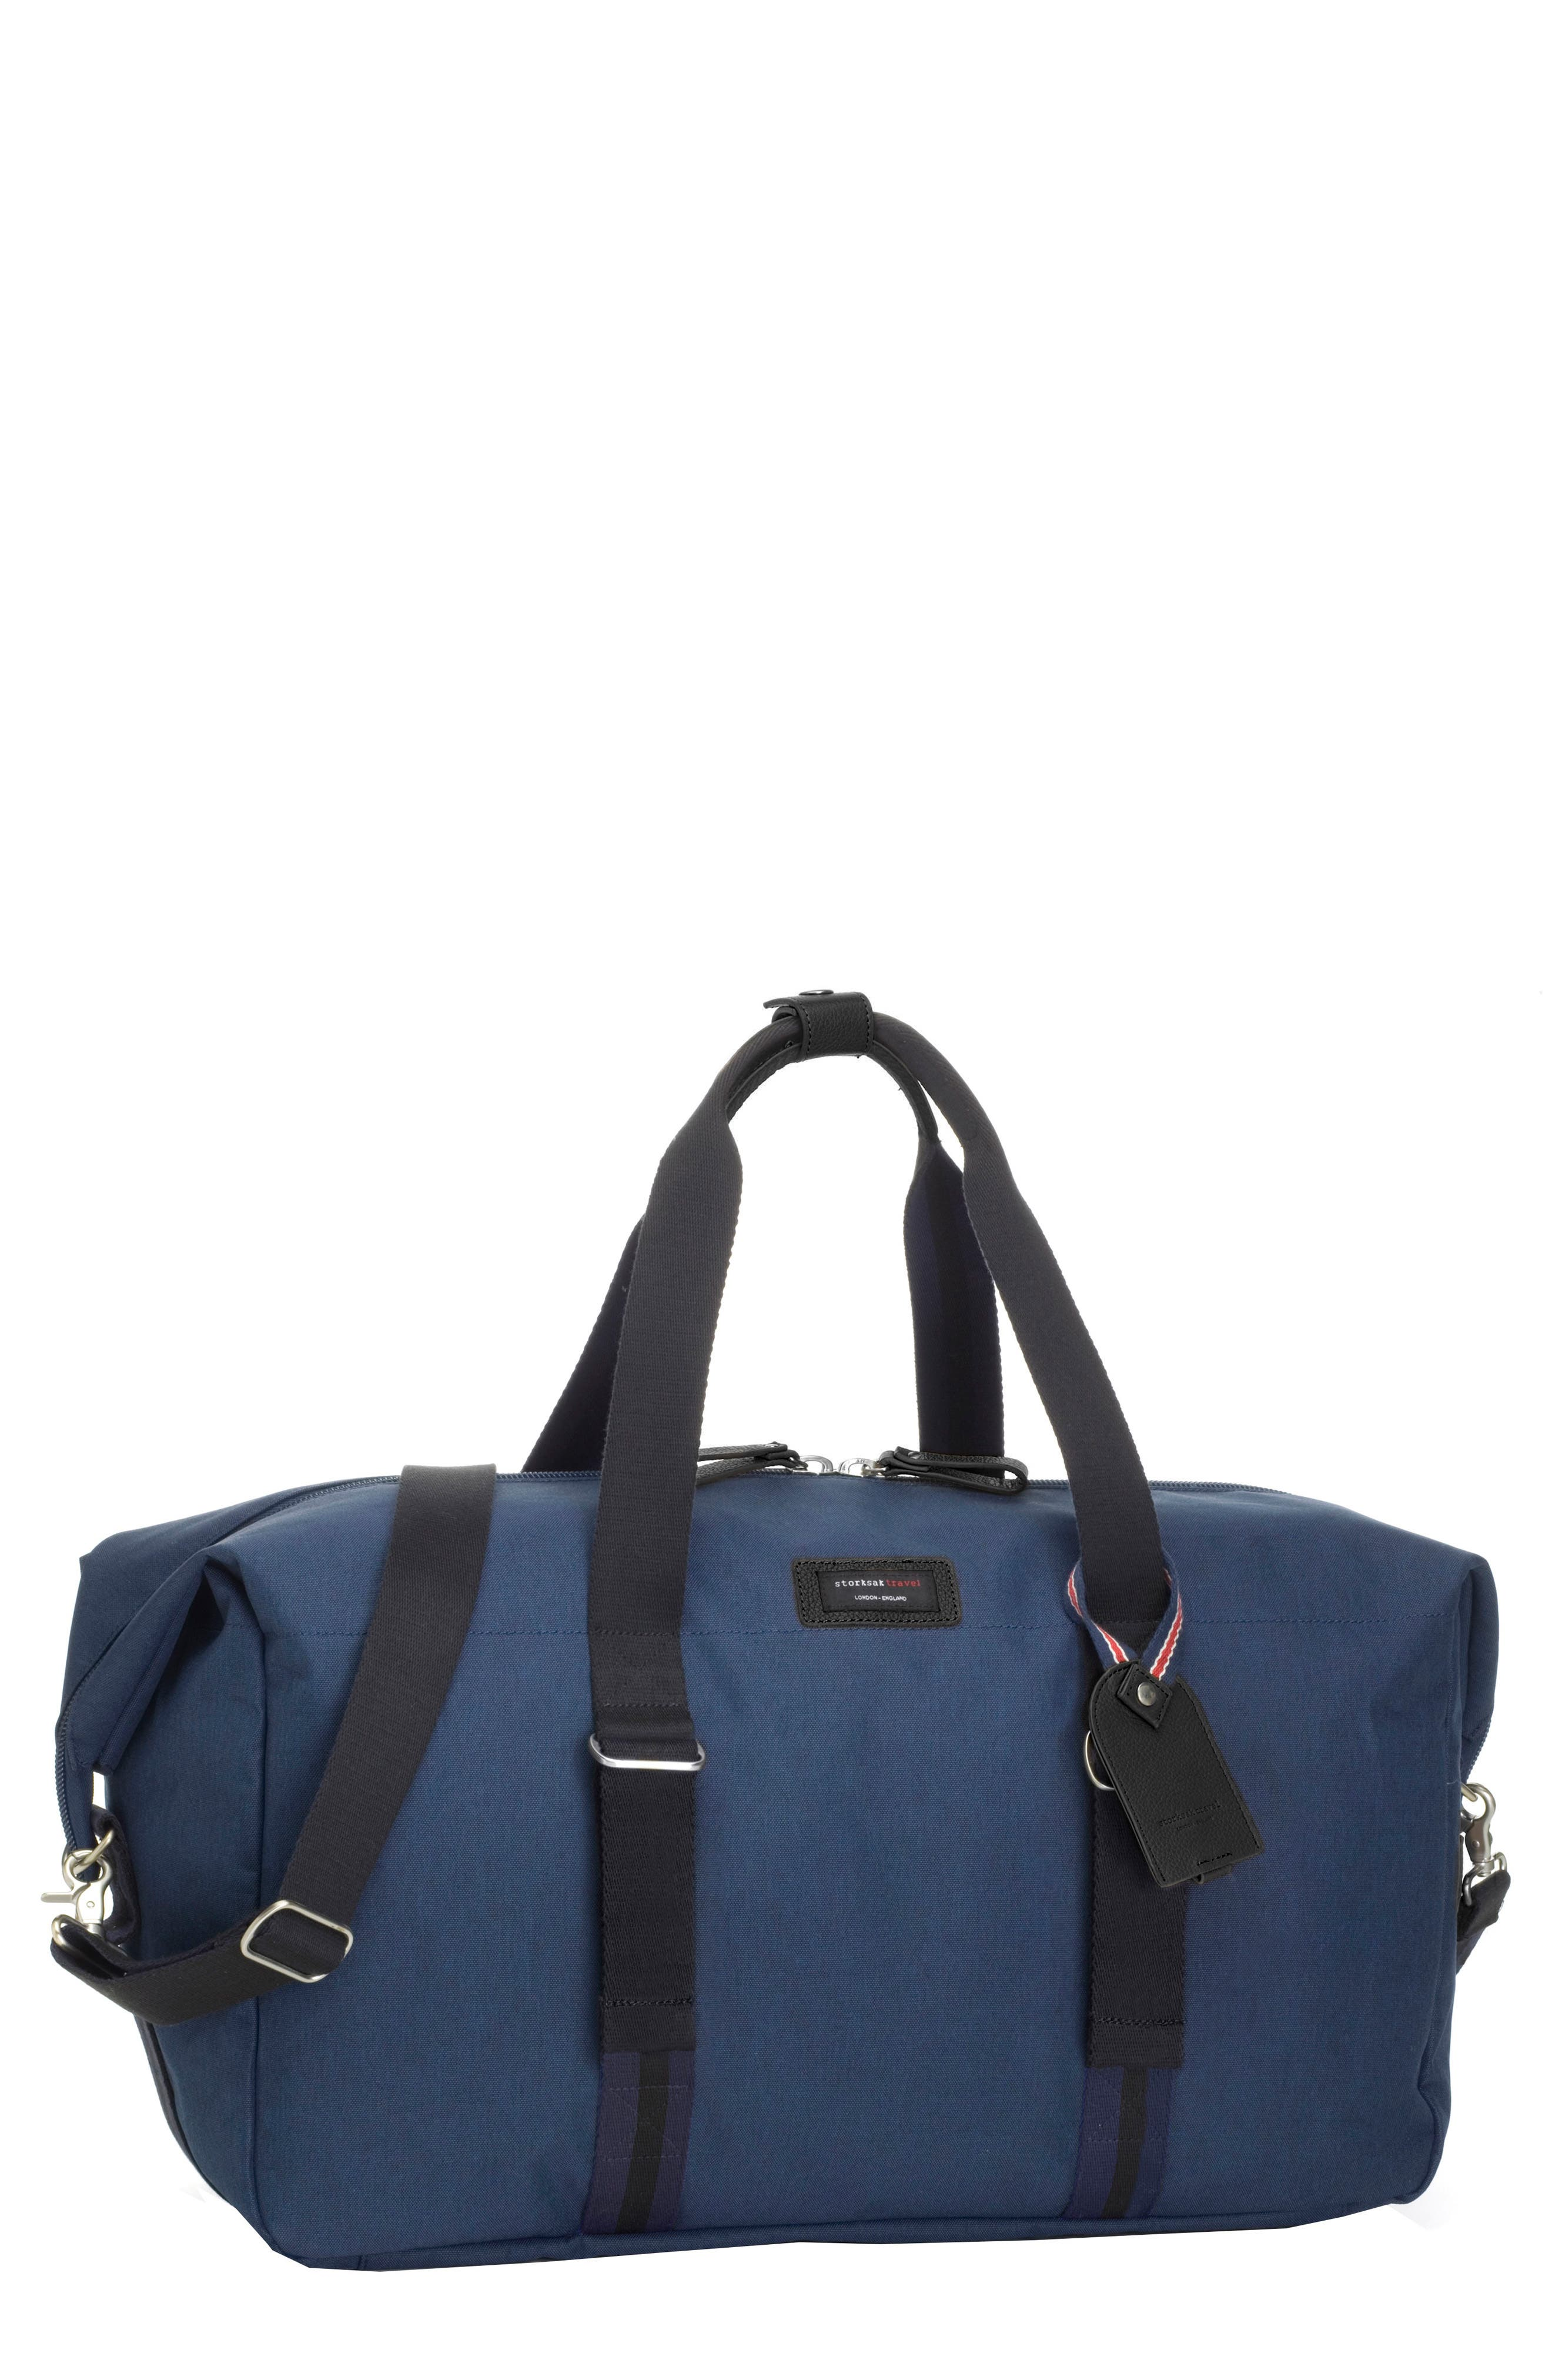 Travel Duffel with Hanging Organizer,                             Main thumbnail 1, color,                             NAVY